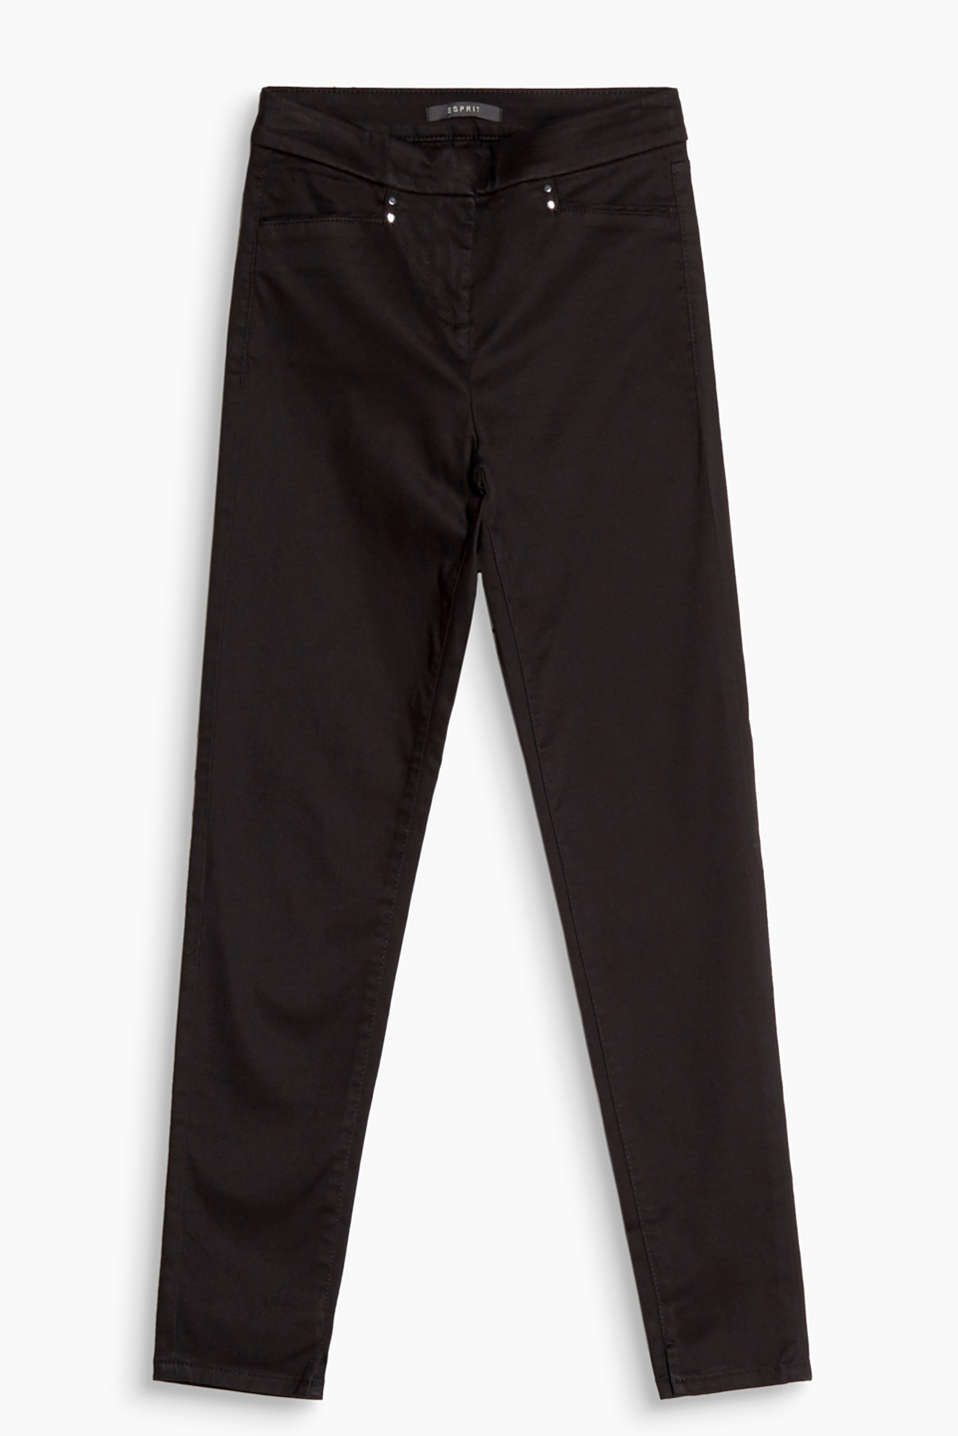 Smooth and shiny: waist height stretch trousers with a fine satin finish and elegant pockets